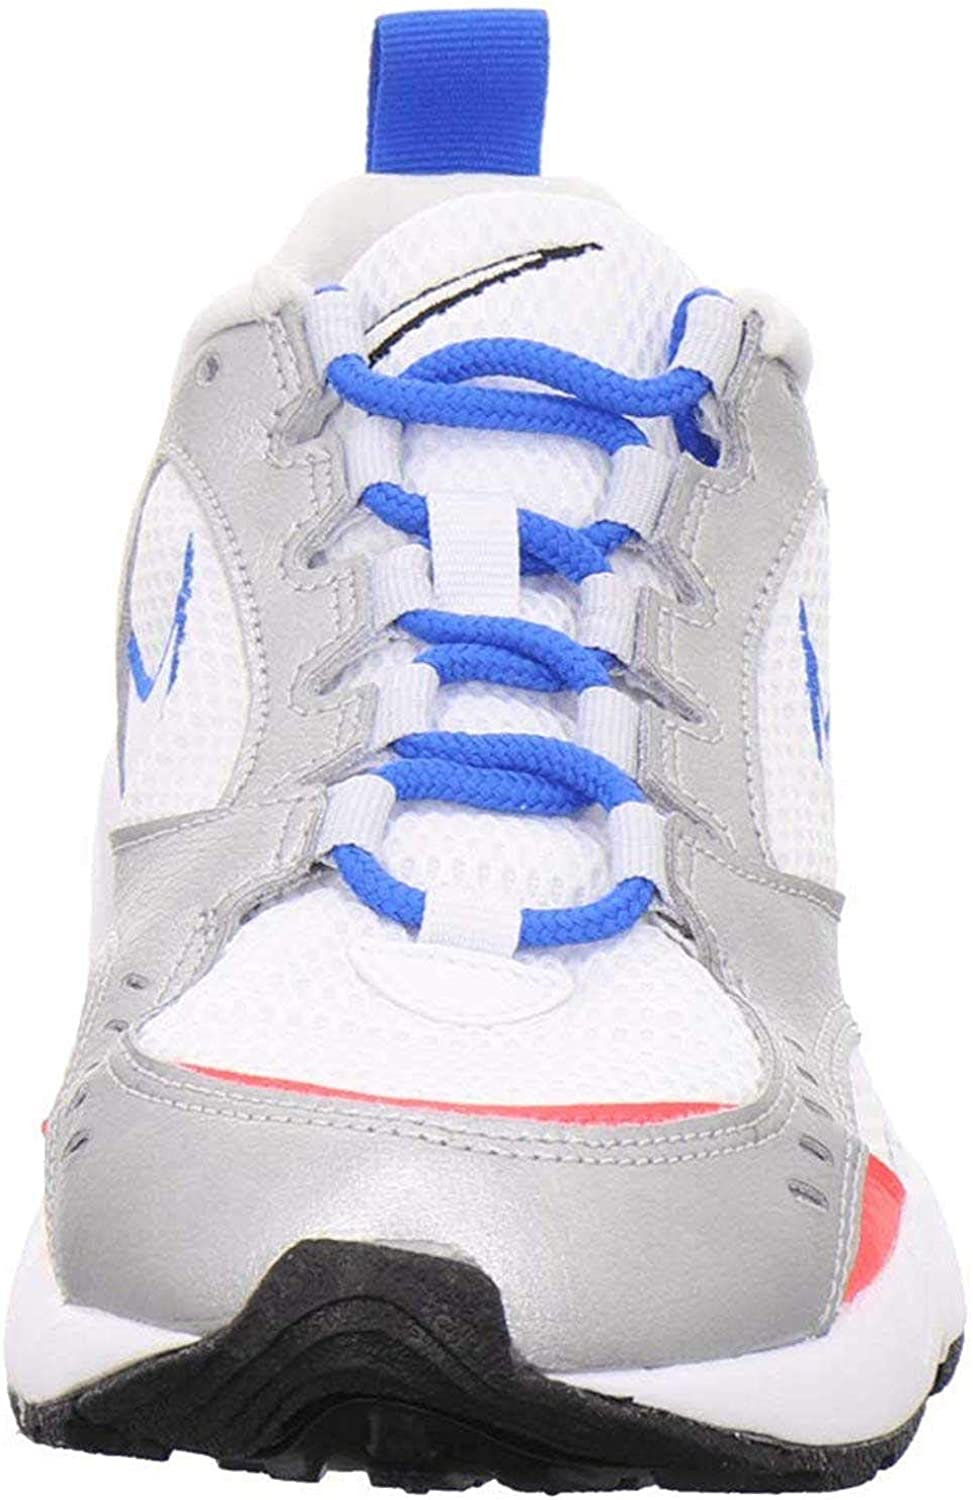 NIKE Air Heights, Zapatillas de Trail Running para Mujer Multicolor White Photo Blue Metallic Silver 101 phQh7